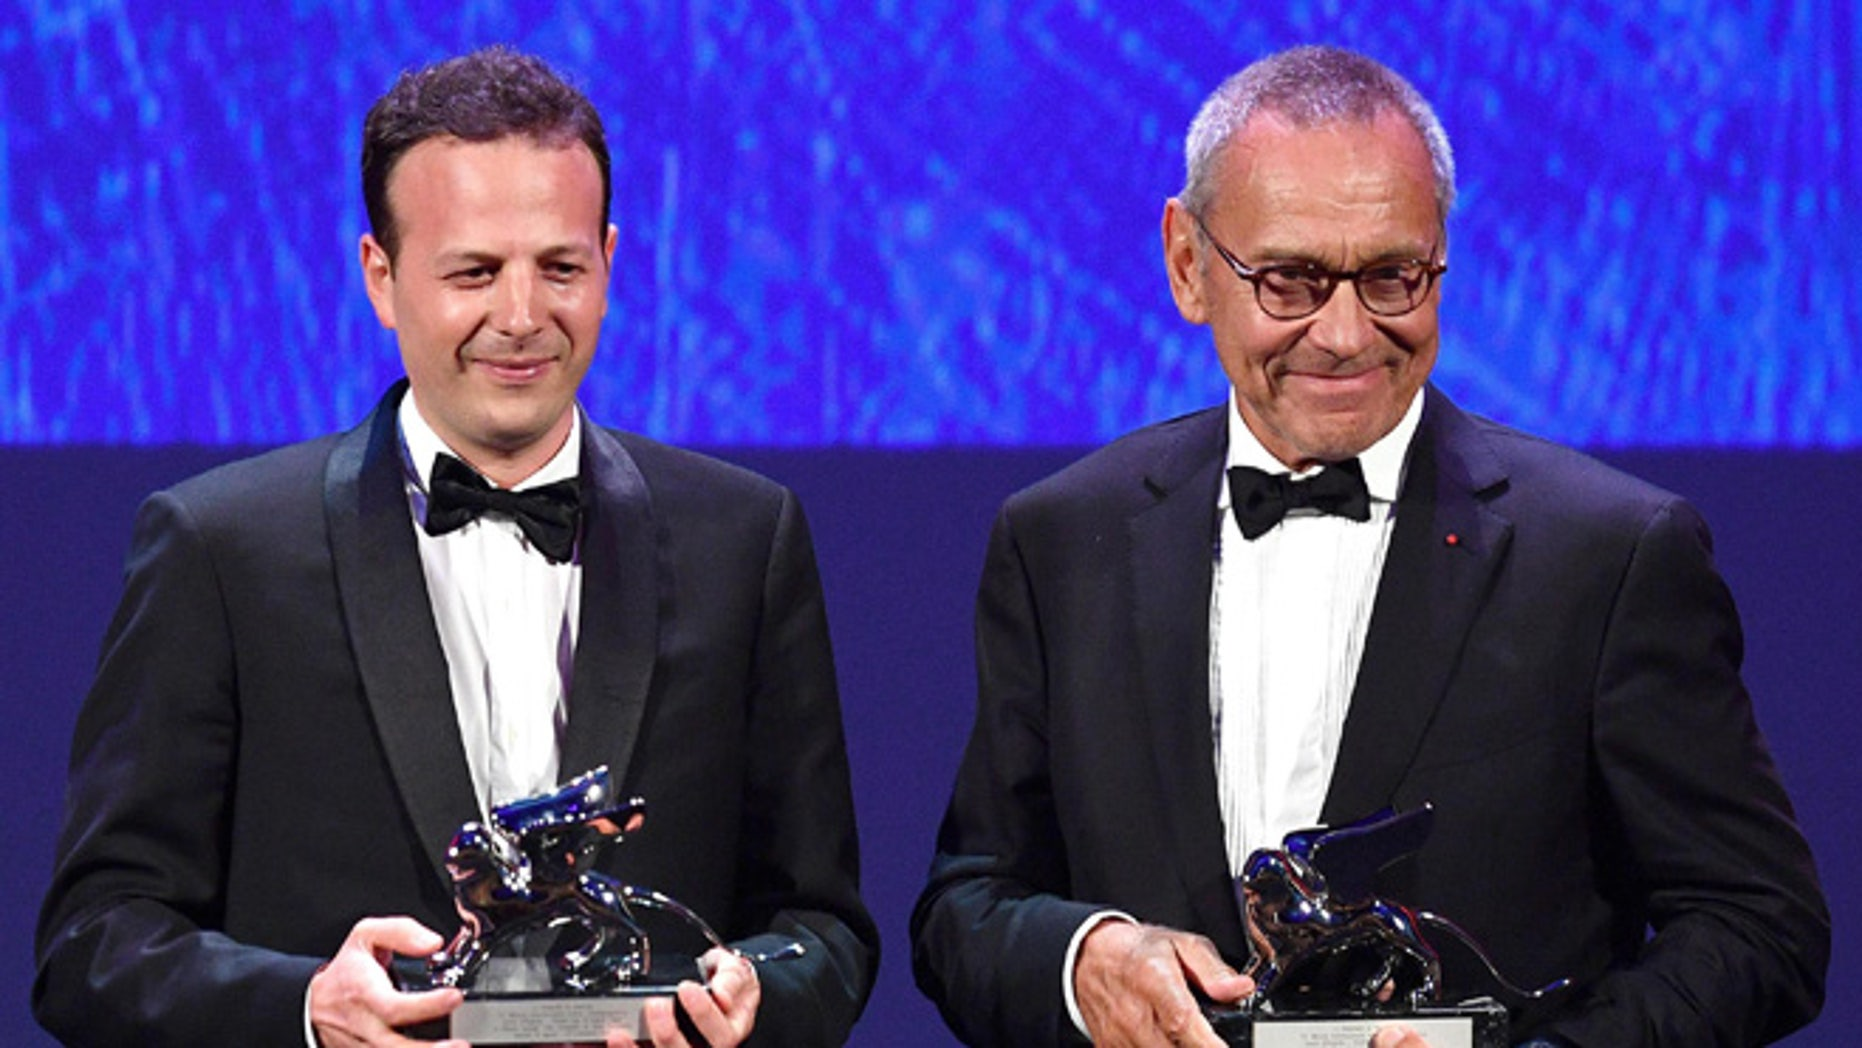 """Mexican film director, producer and screenwrite Amat Escalante, left, holds the Silver Lion award for his movie """"La Region Salvaje"""" (The Untamed) flanked by Russian director Andrei Konchalovsky, holding the Silver Lion award for his movie """"Paradise"""" during the awards ceremony of the 73rd Venice International Film Festival, in Venice, Italy, Saturday, Sept. 10, 2016. (Ettore Ferrari/ANSA via AP)"""